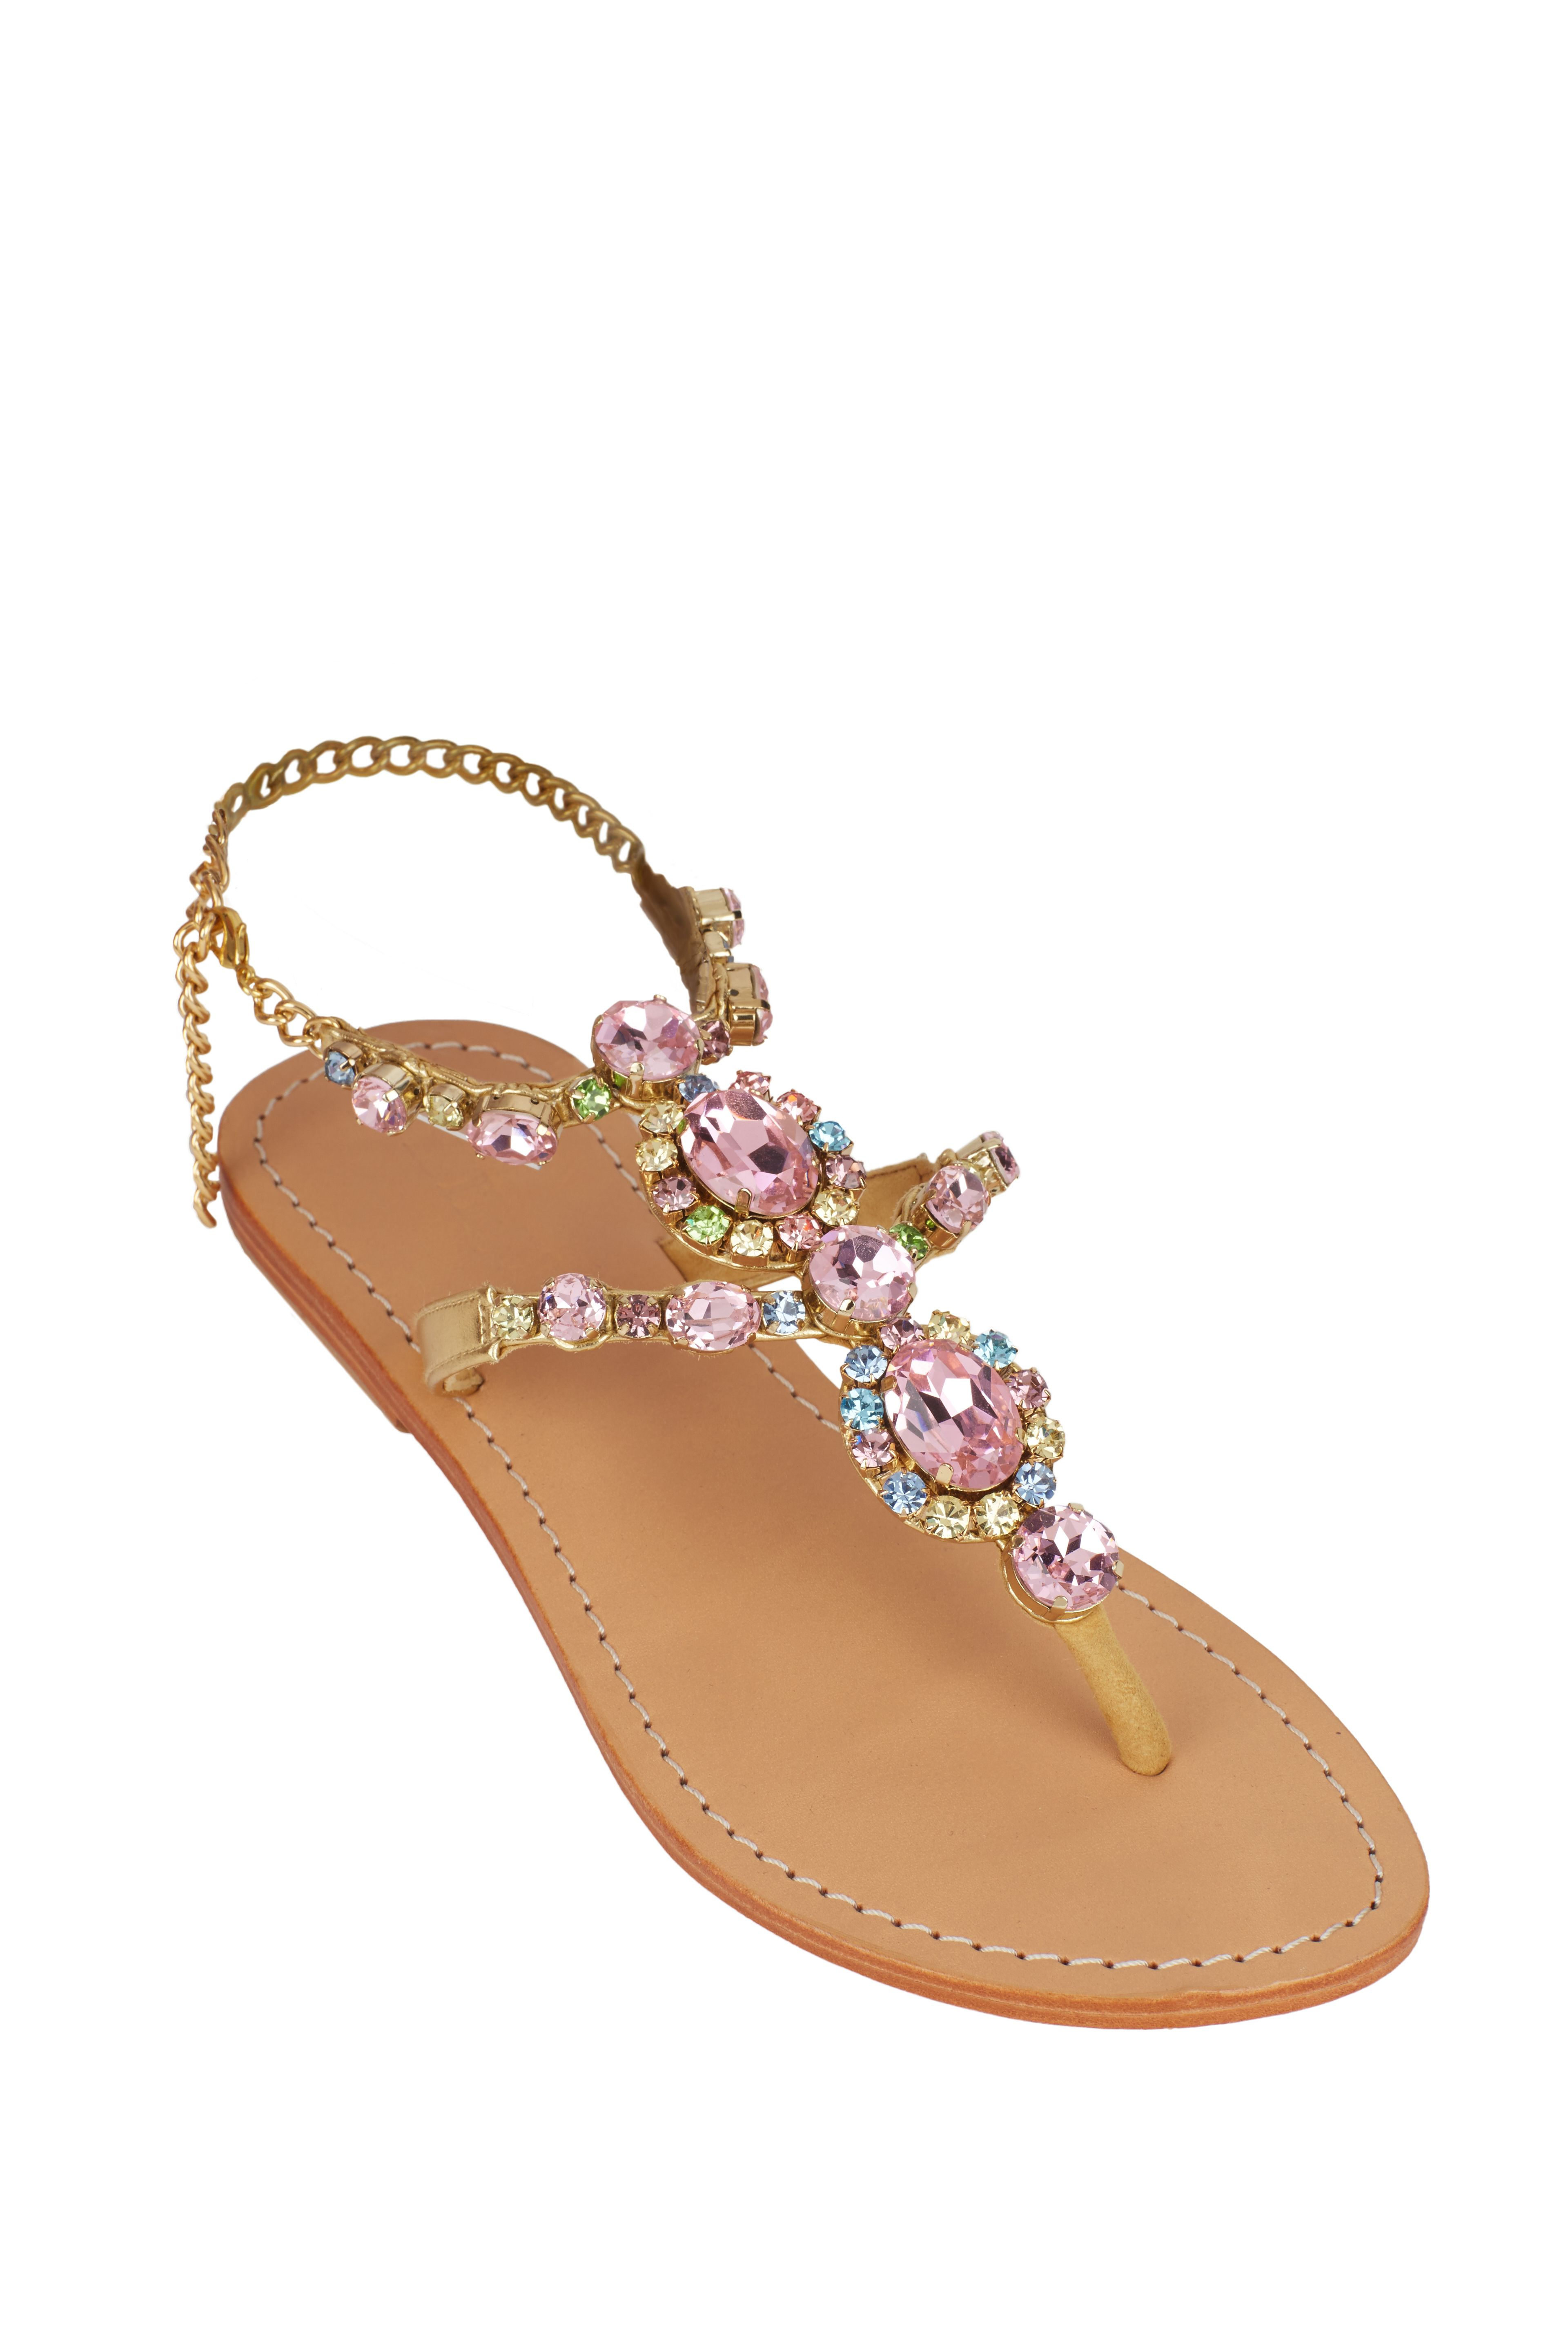 Mystique Rose jeweled flat sandals https